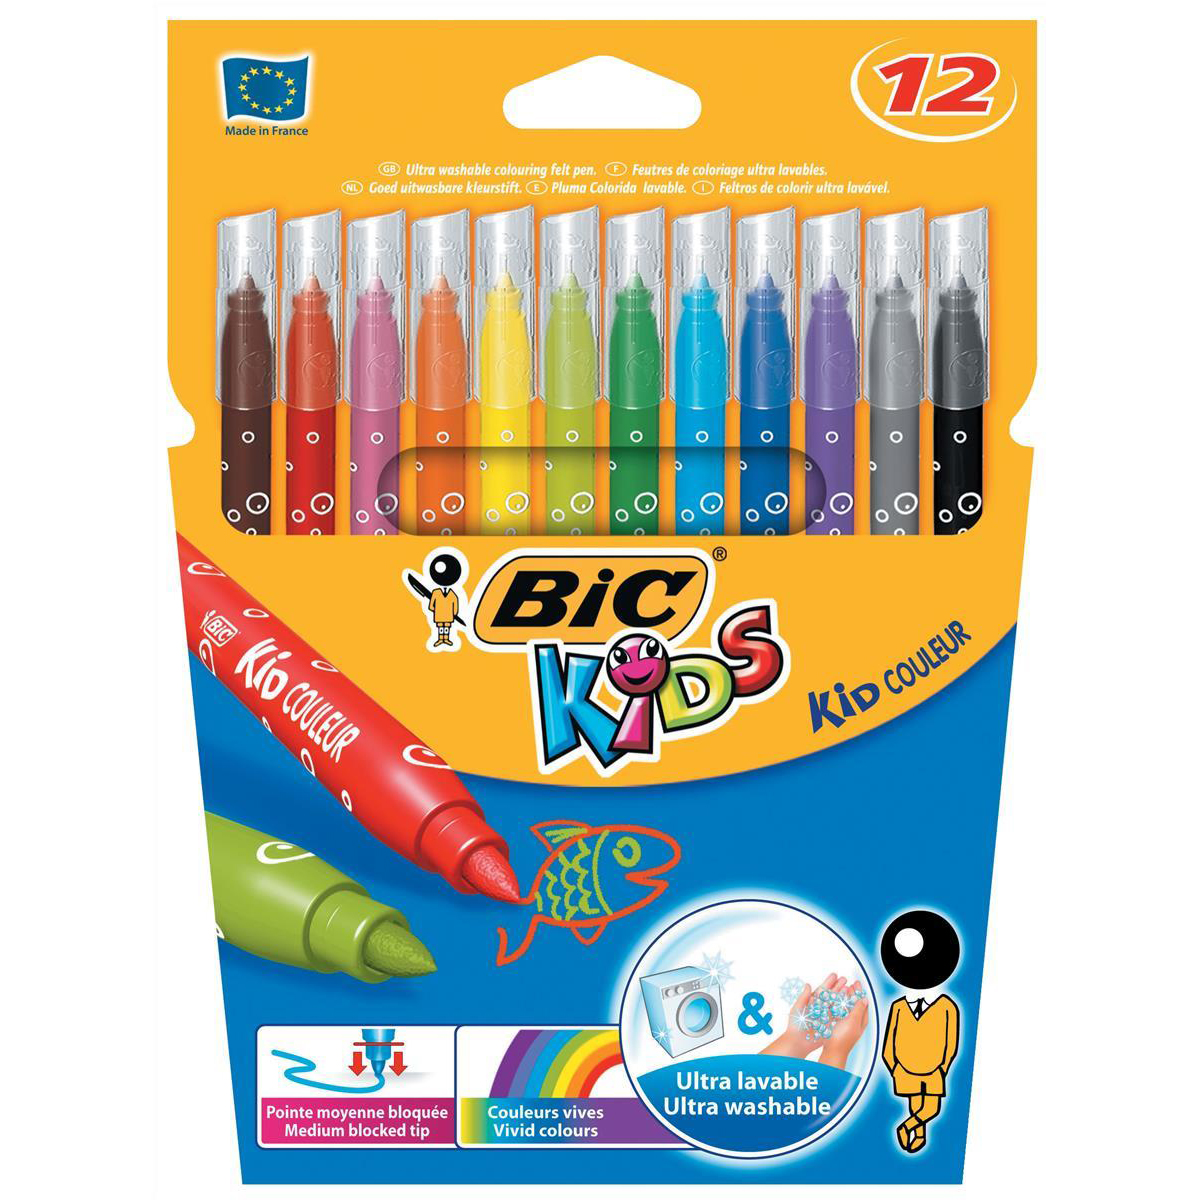 Bic Kids Couleur Felt Tip Pens Washable Water-based Ink Medium Tip Wallet Asstd Cols Ref 920293 Pack 12